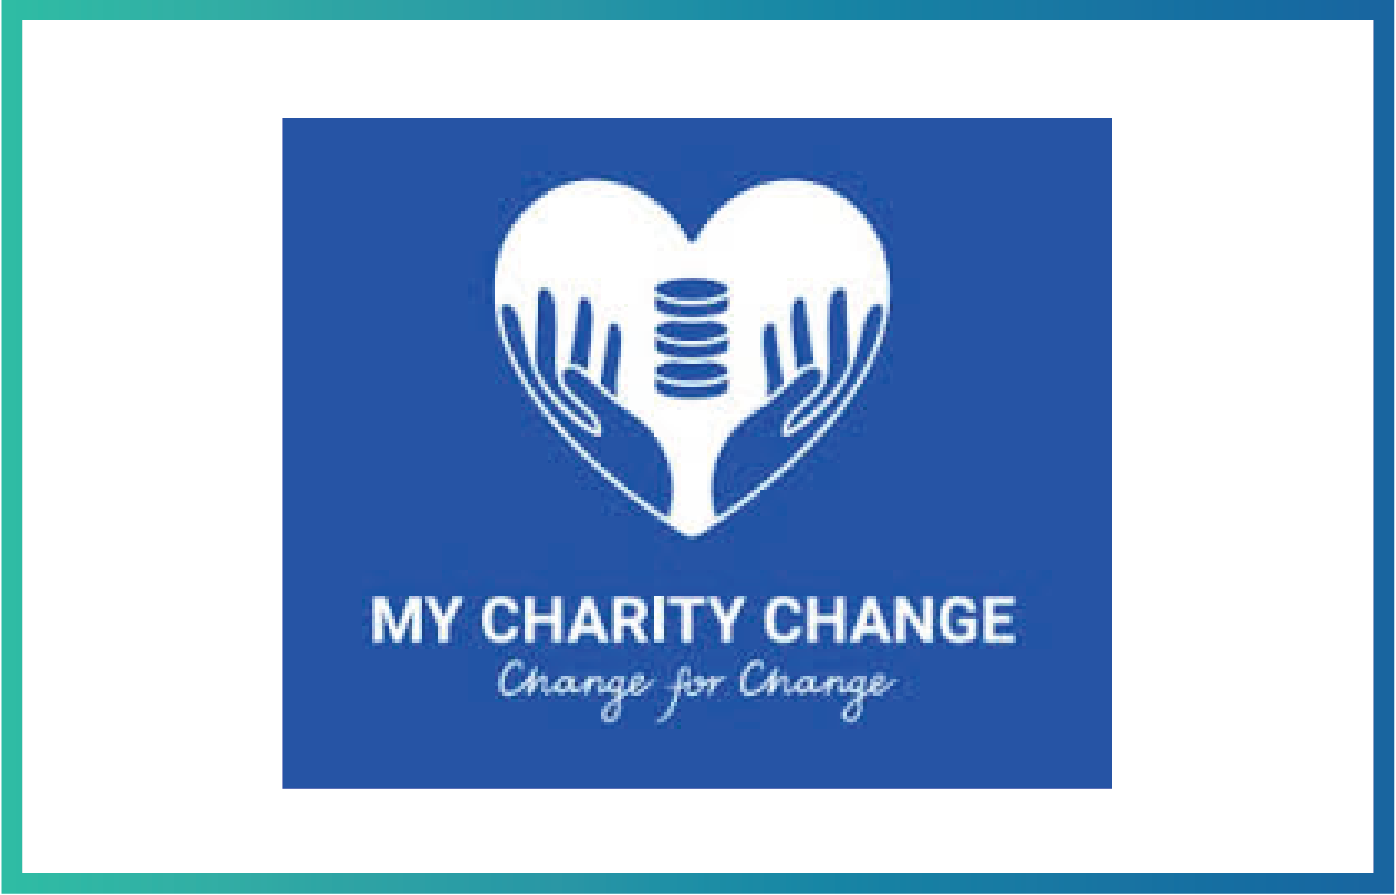 My Charity Change Logo